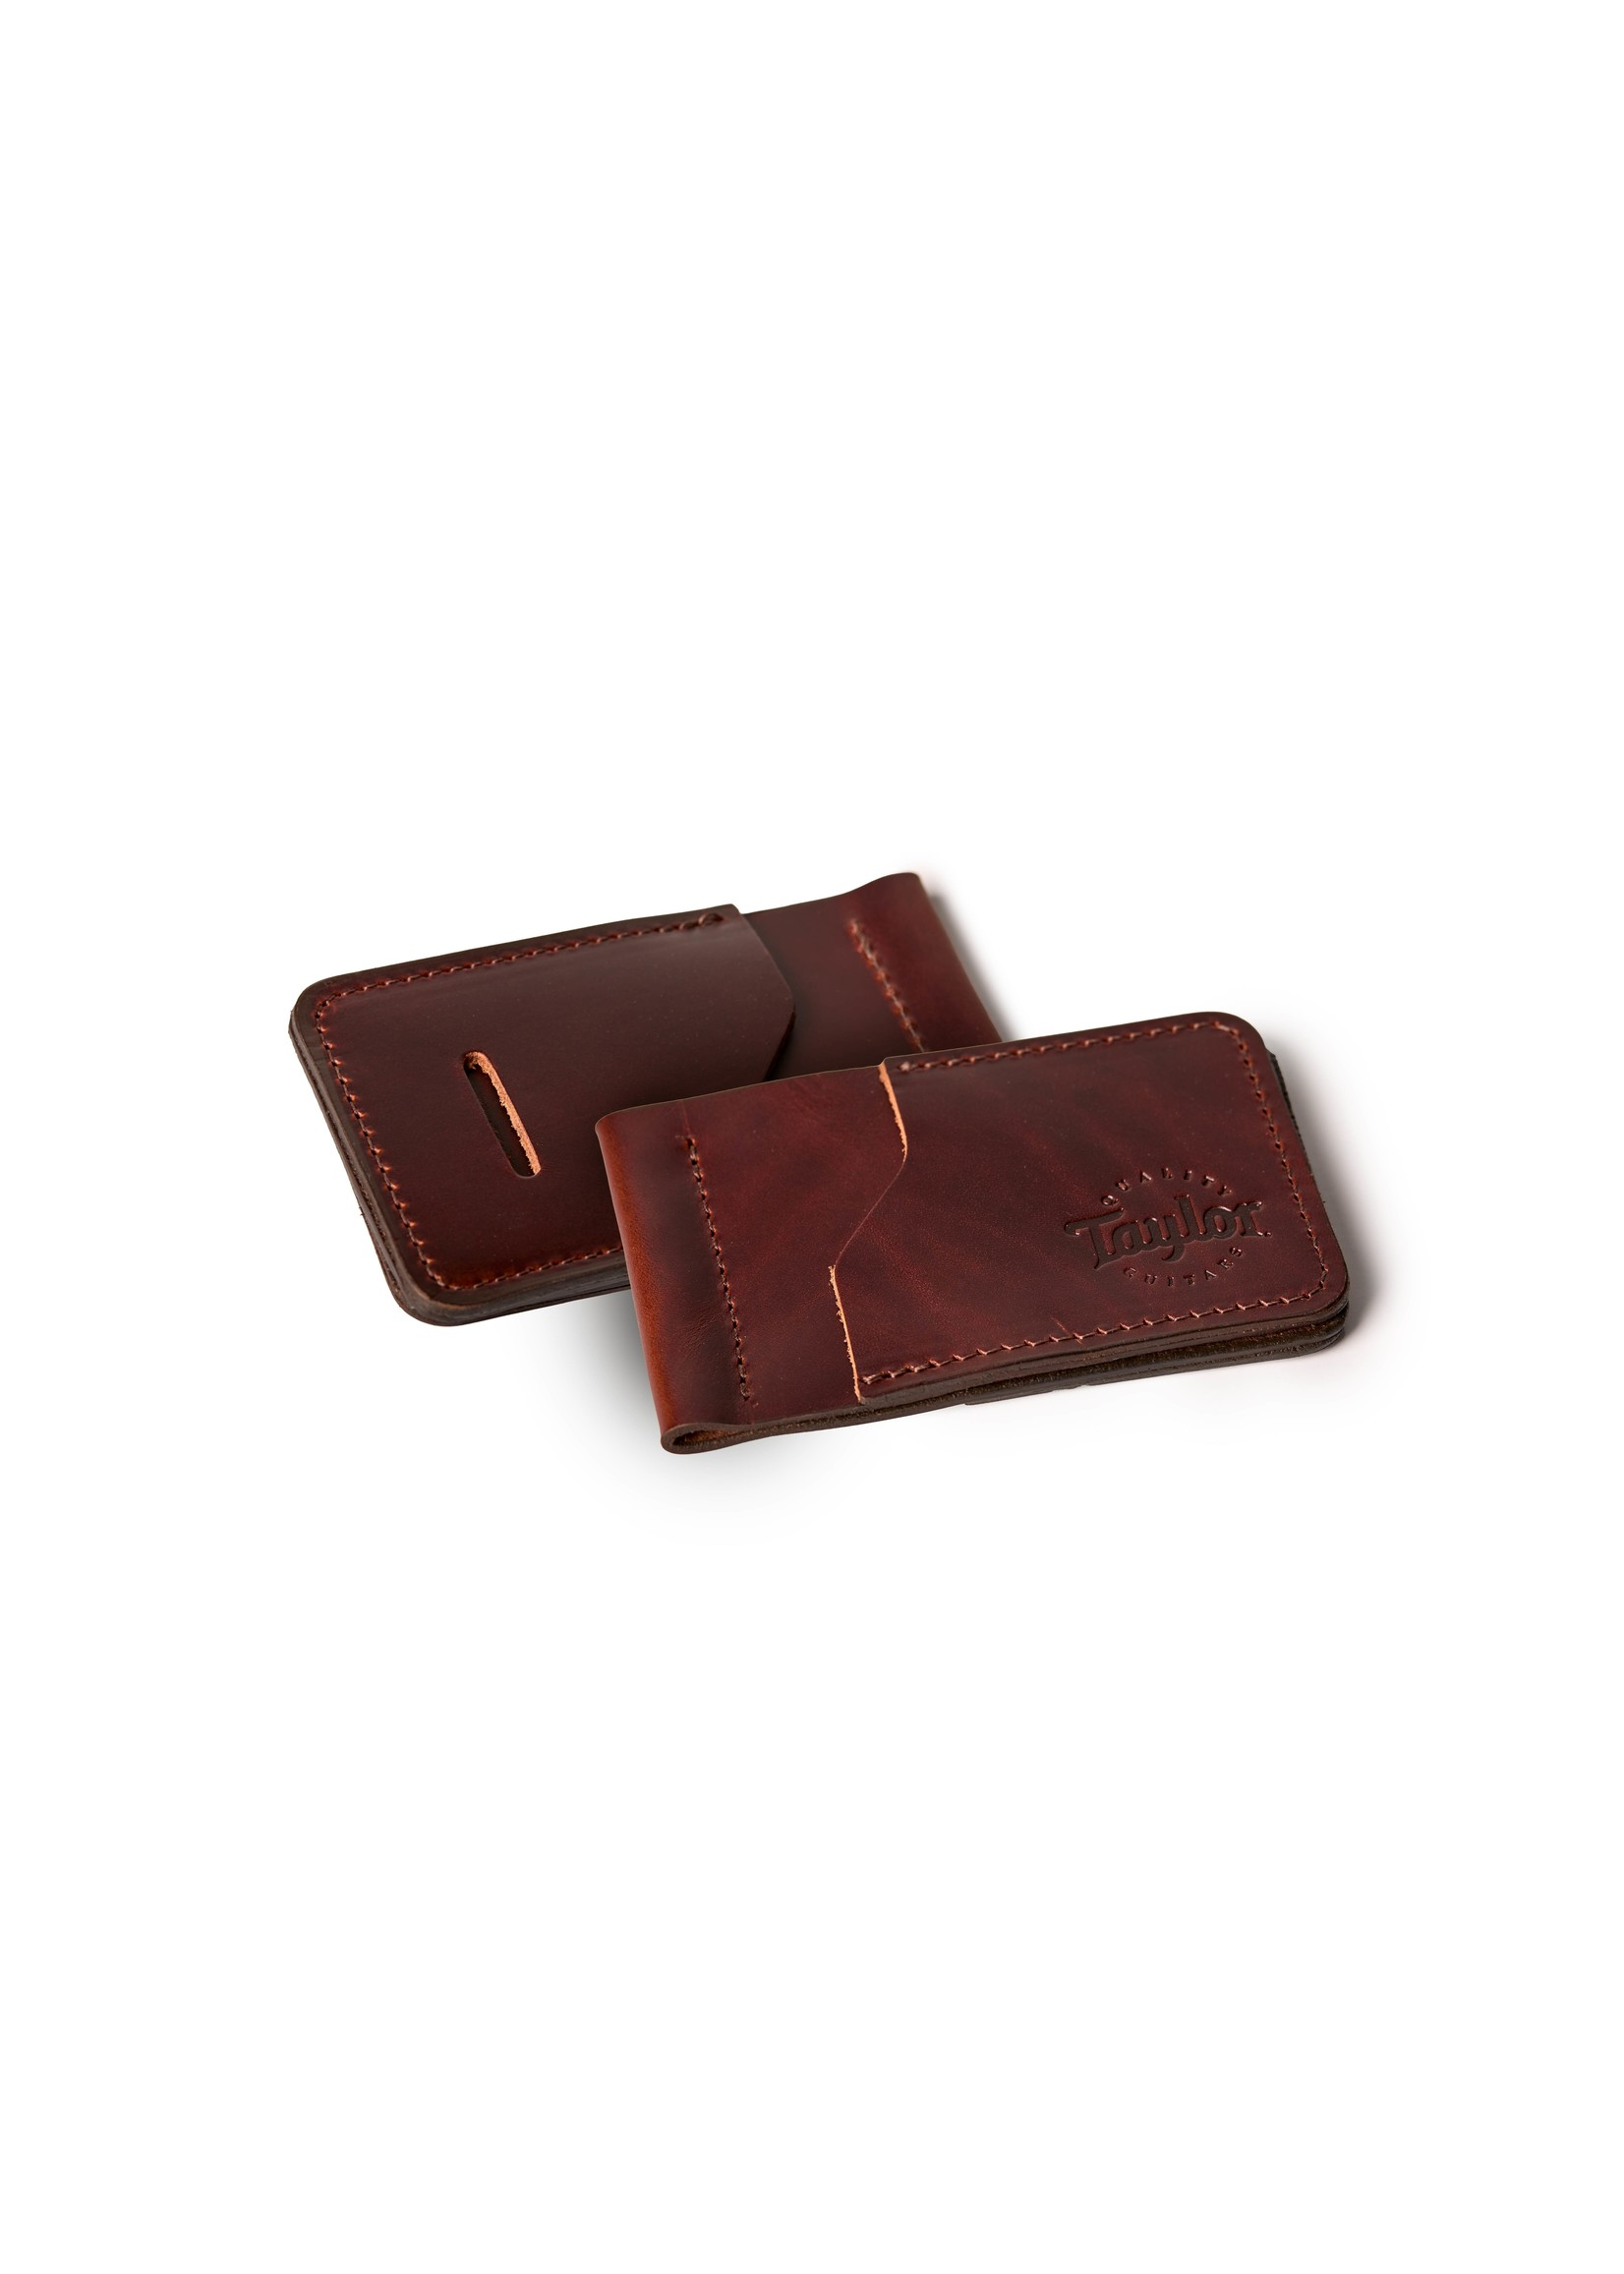 Taylor Taylor Leather Wallet